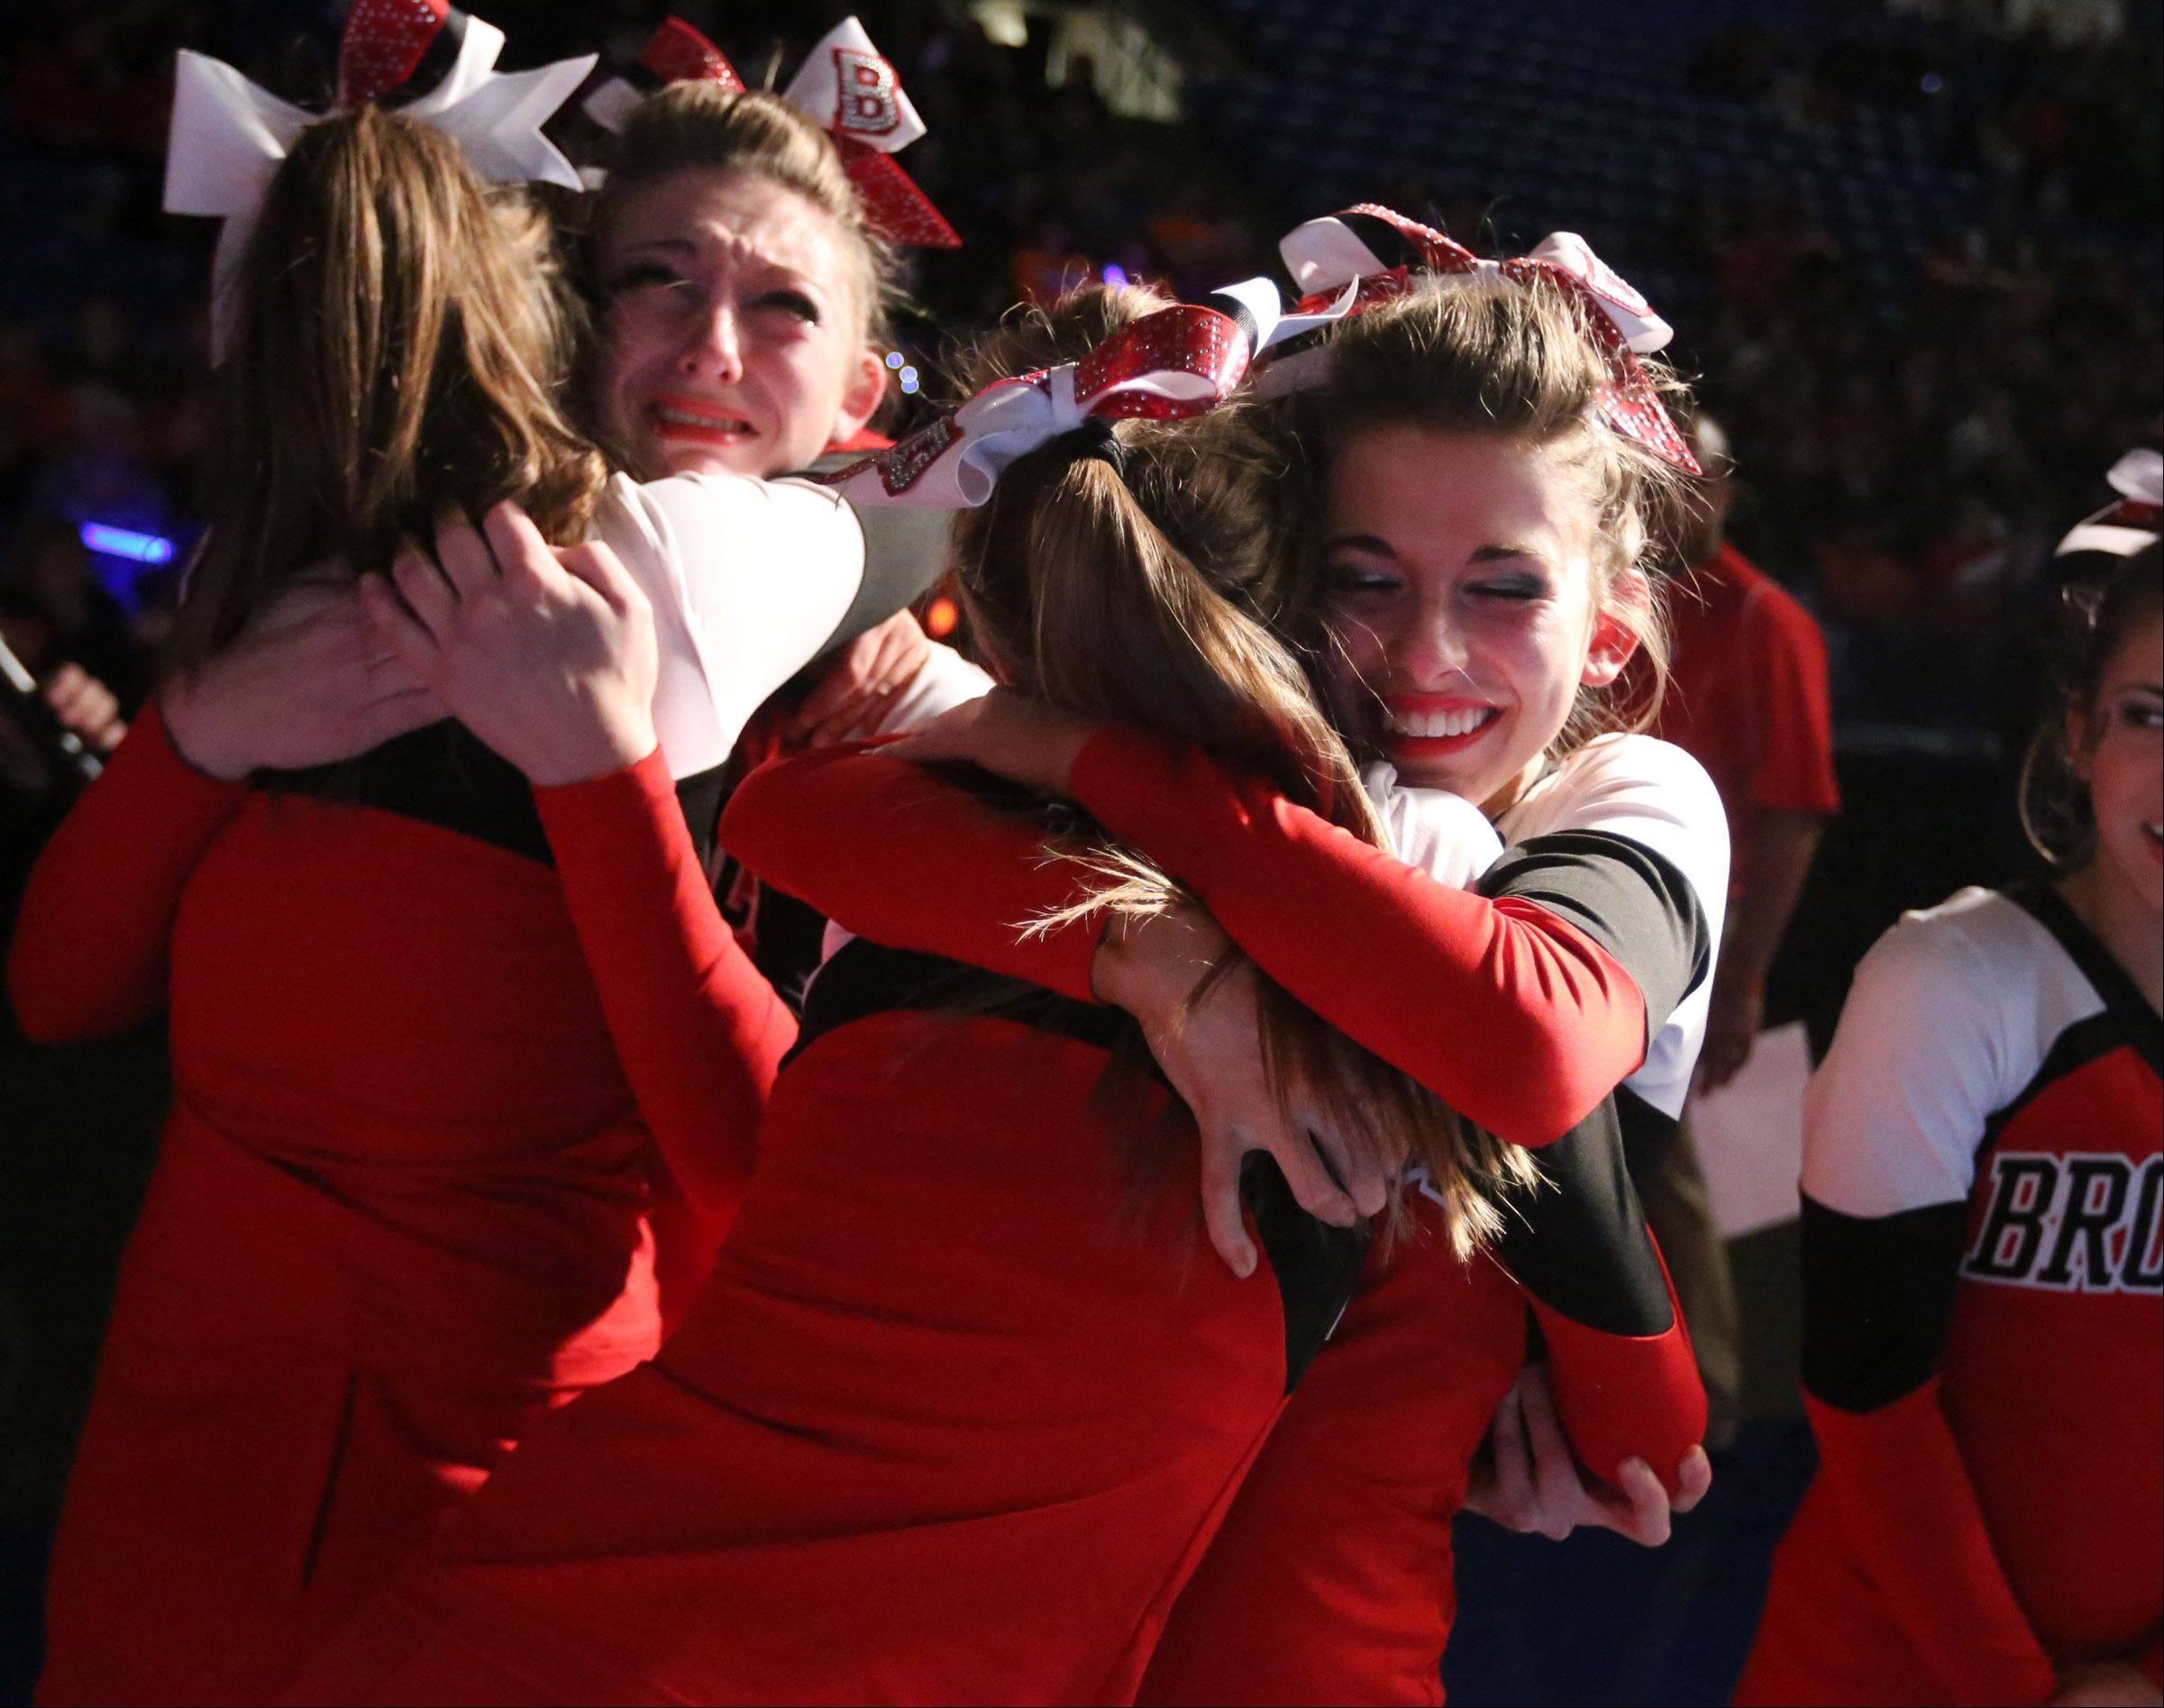 Barrington cheer team reacts to the announcement that they took third place in the coed team category at the IHSA state finals on Saturday in Bloomington.